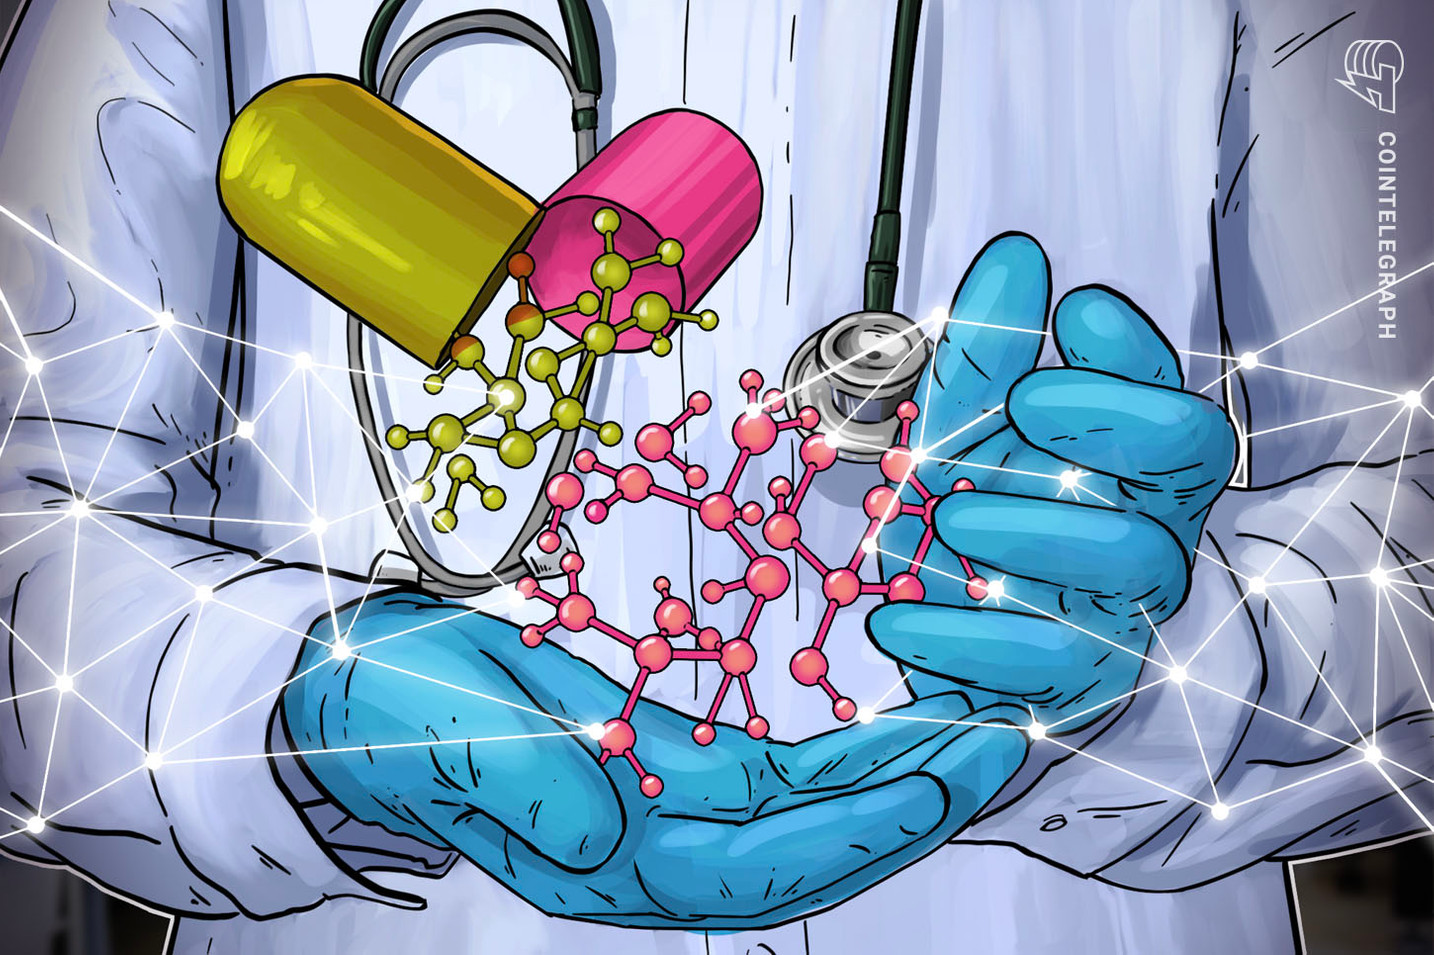 China's Tencent to Develop Blockchain Medical Tools With Waterdrop After Investment